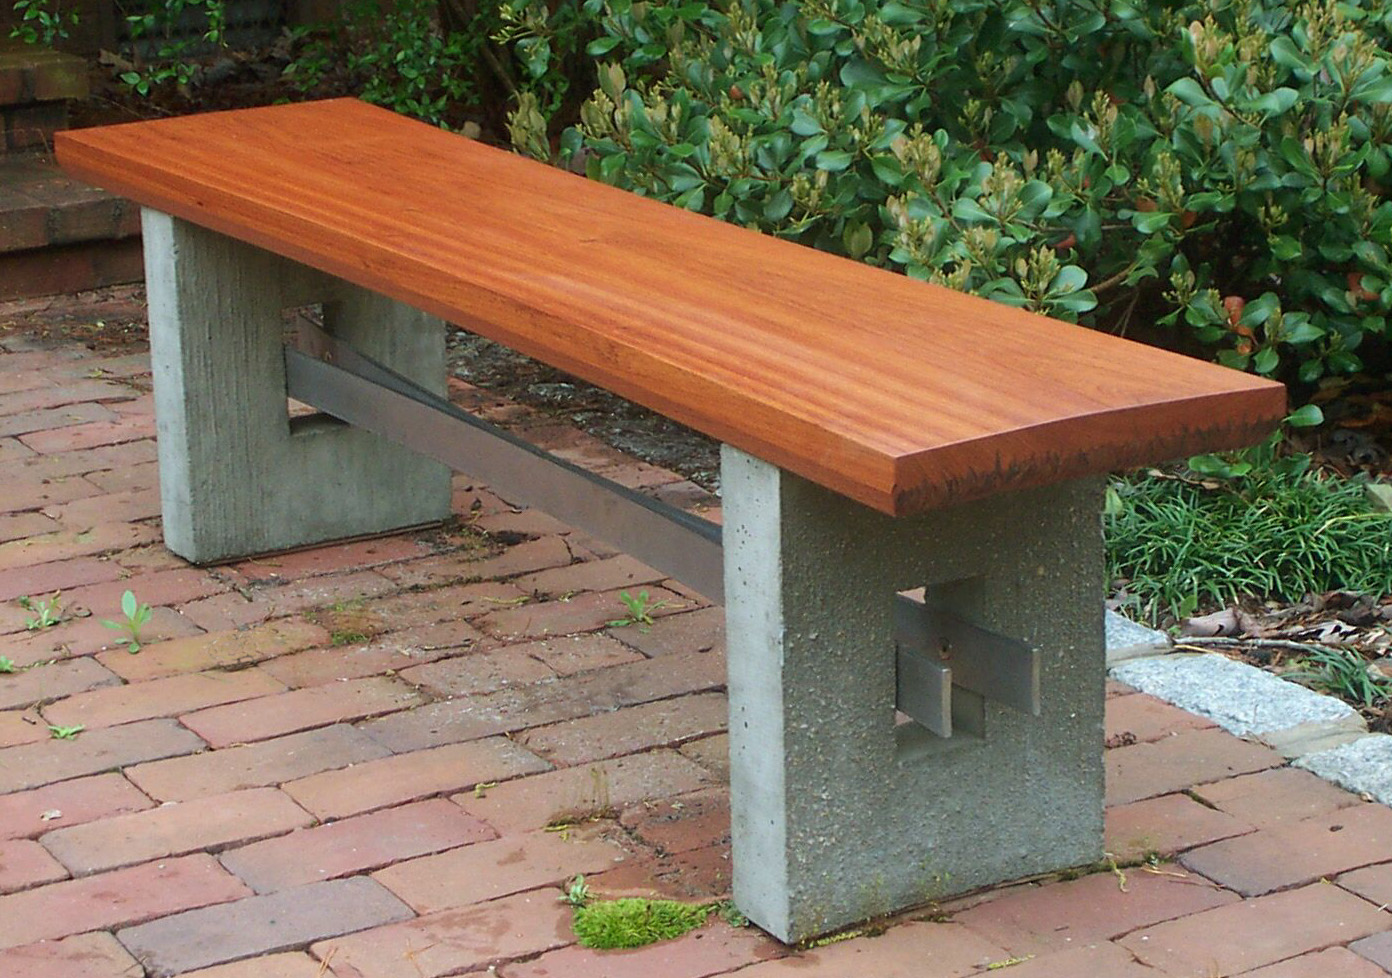 Serenity in the Garden: Beautiful Outdoor Benches Complete a Garden